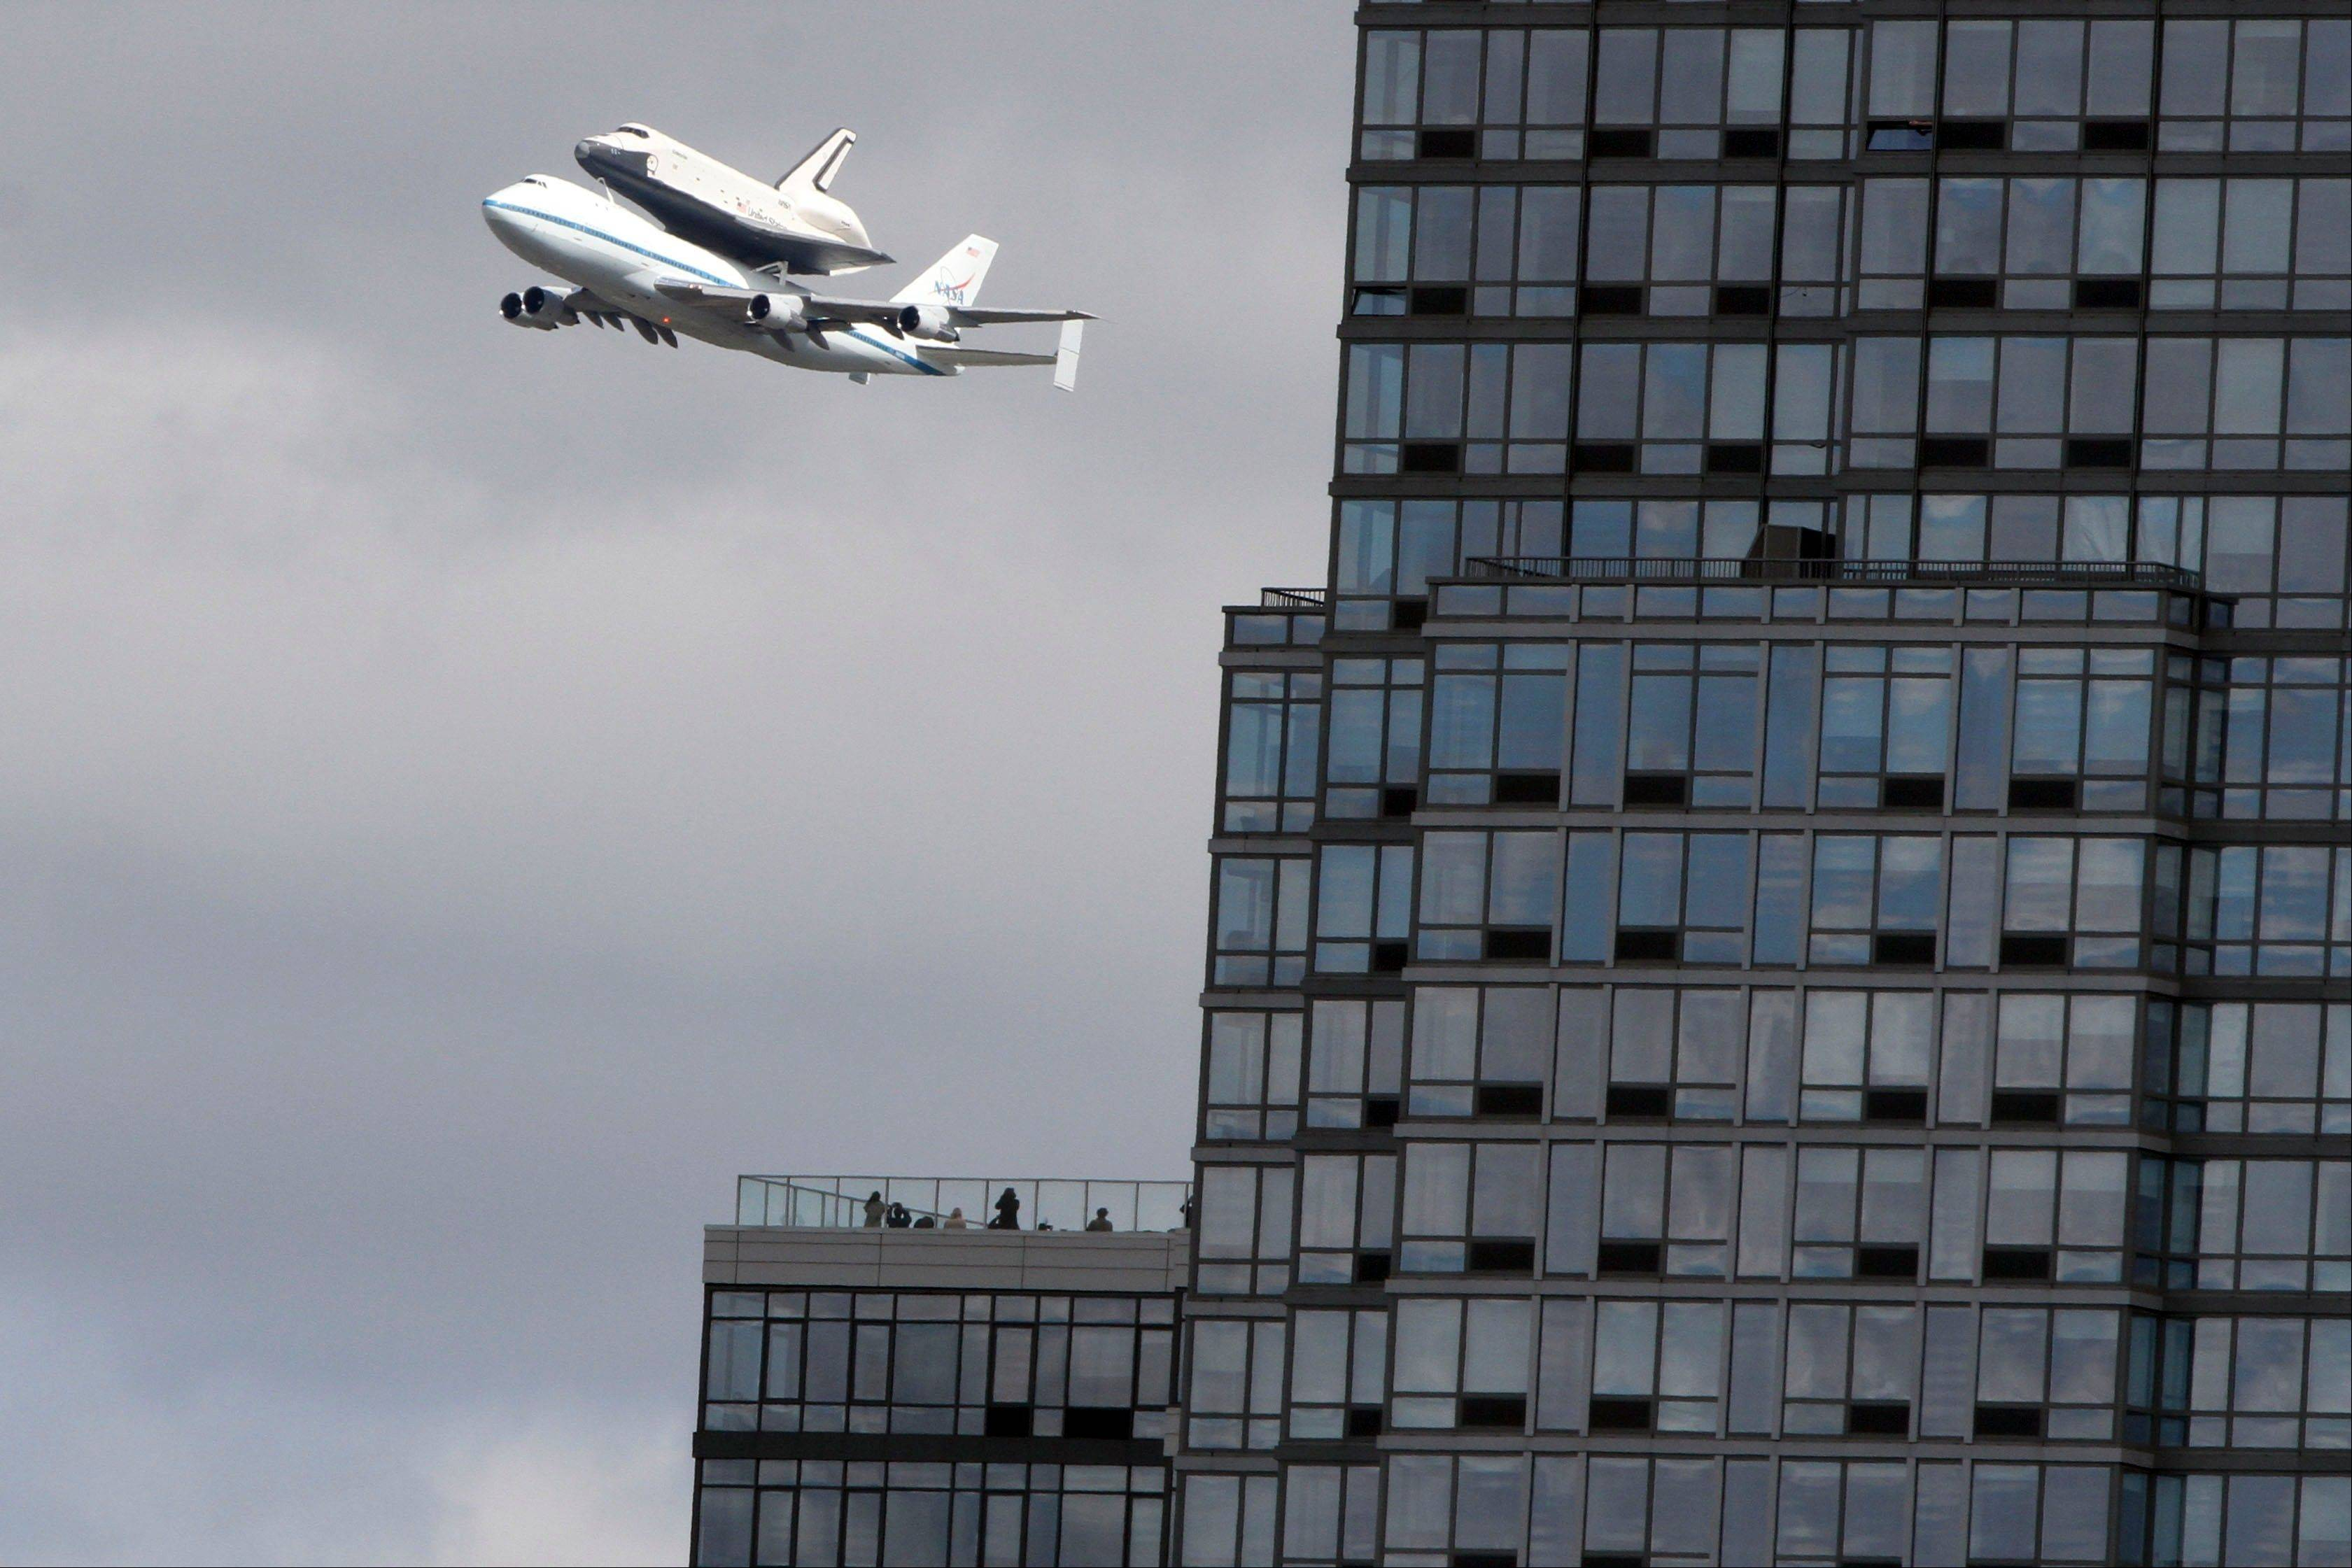 Space shuttle Enterprise arrives at NY's JFK